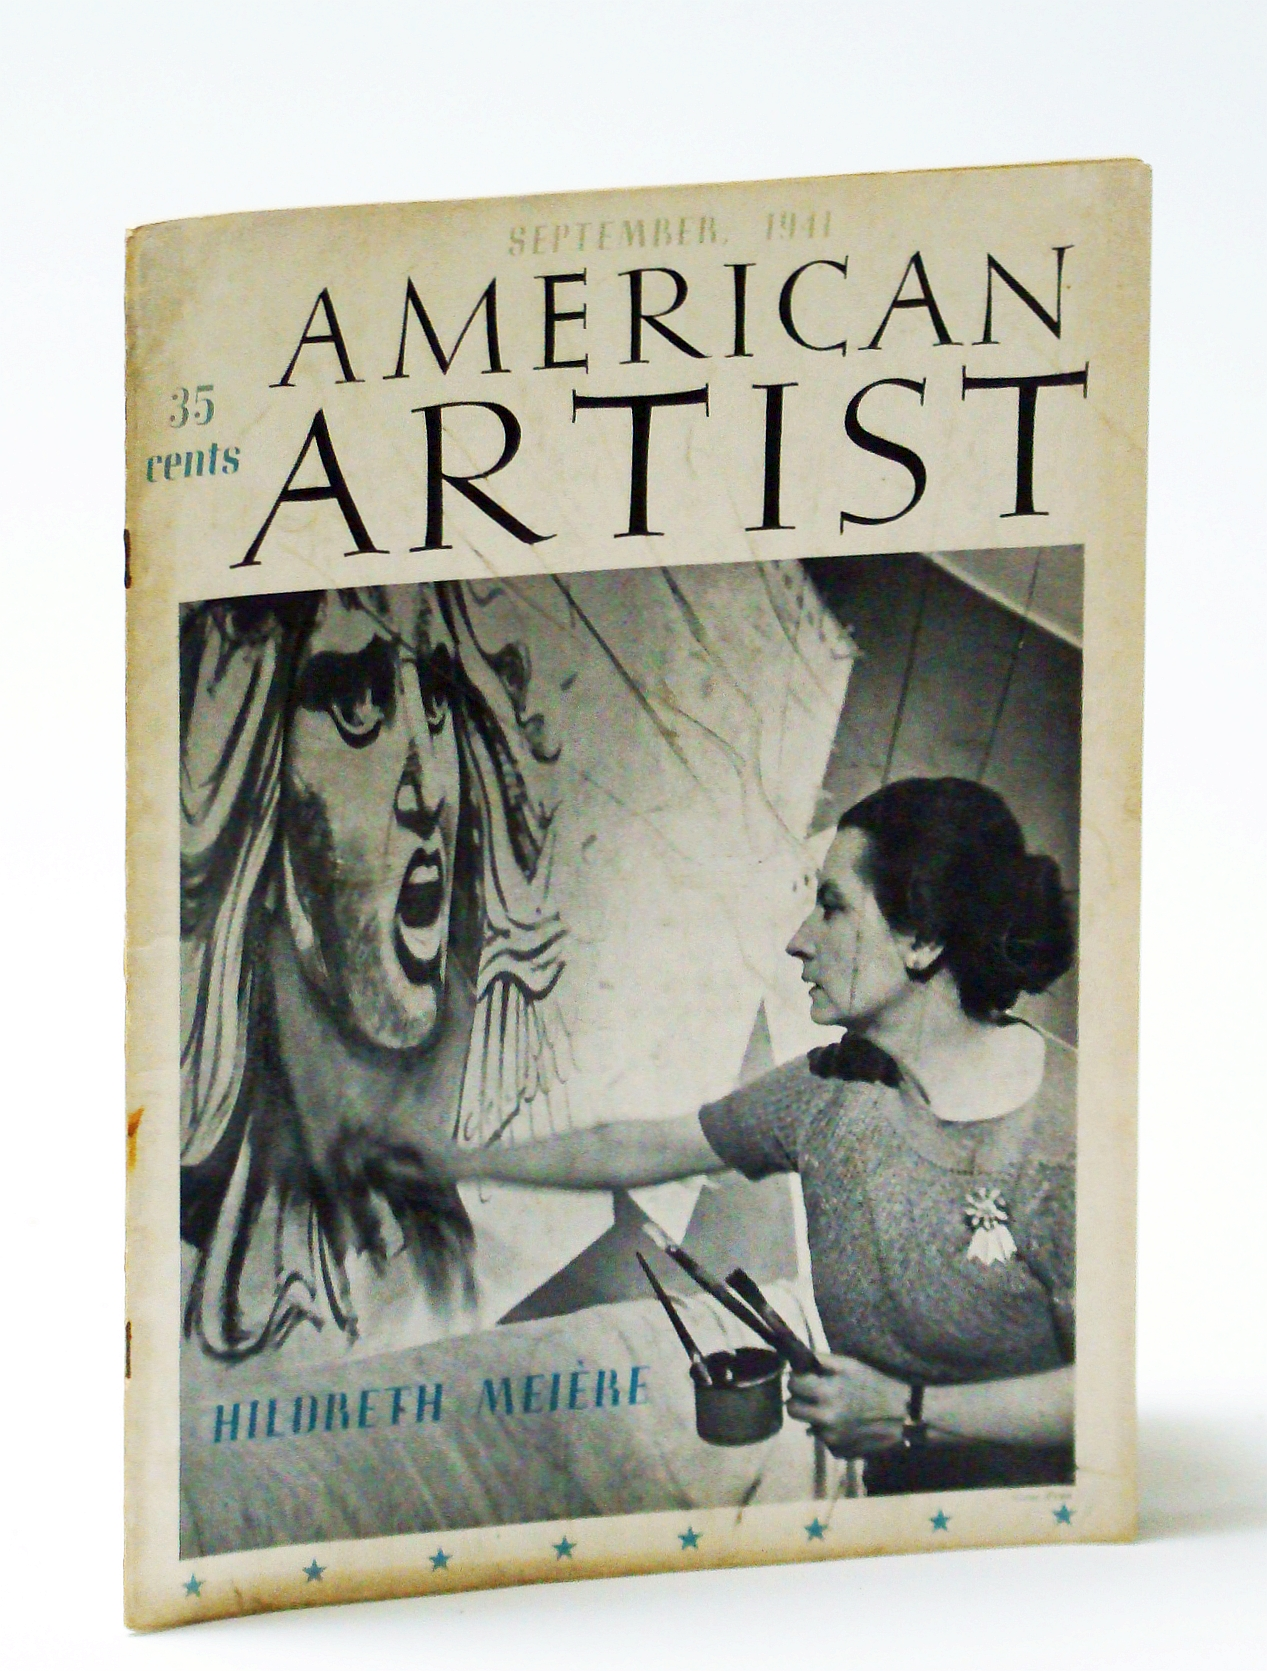 Image for American Artist Magazine, September (Sept.) 1941: Hildreth Meiere - Mural Painter (cover photo)